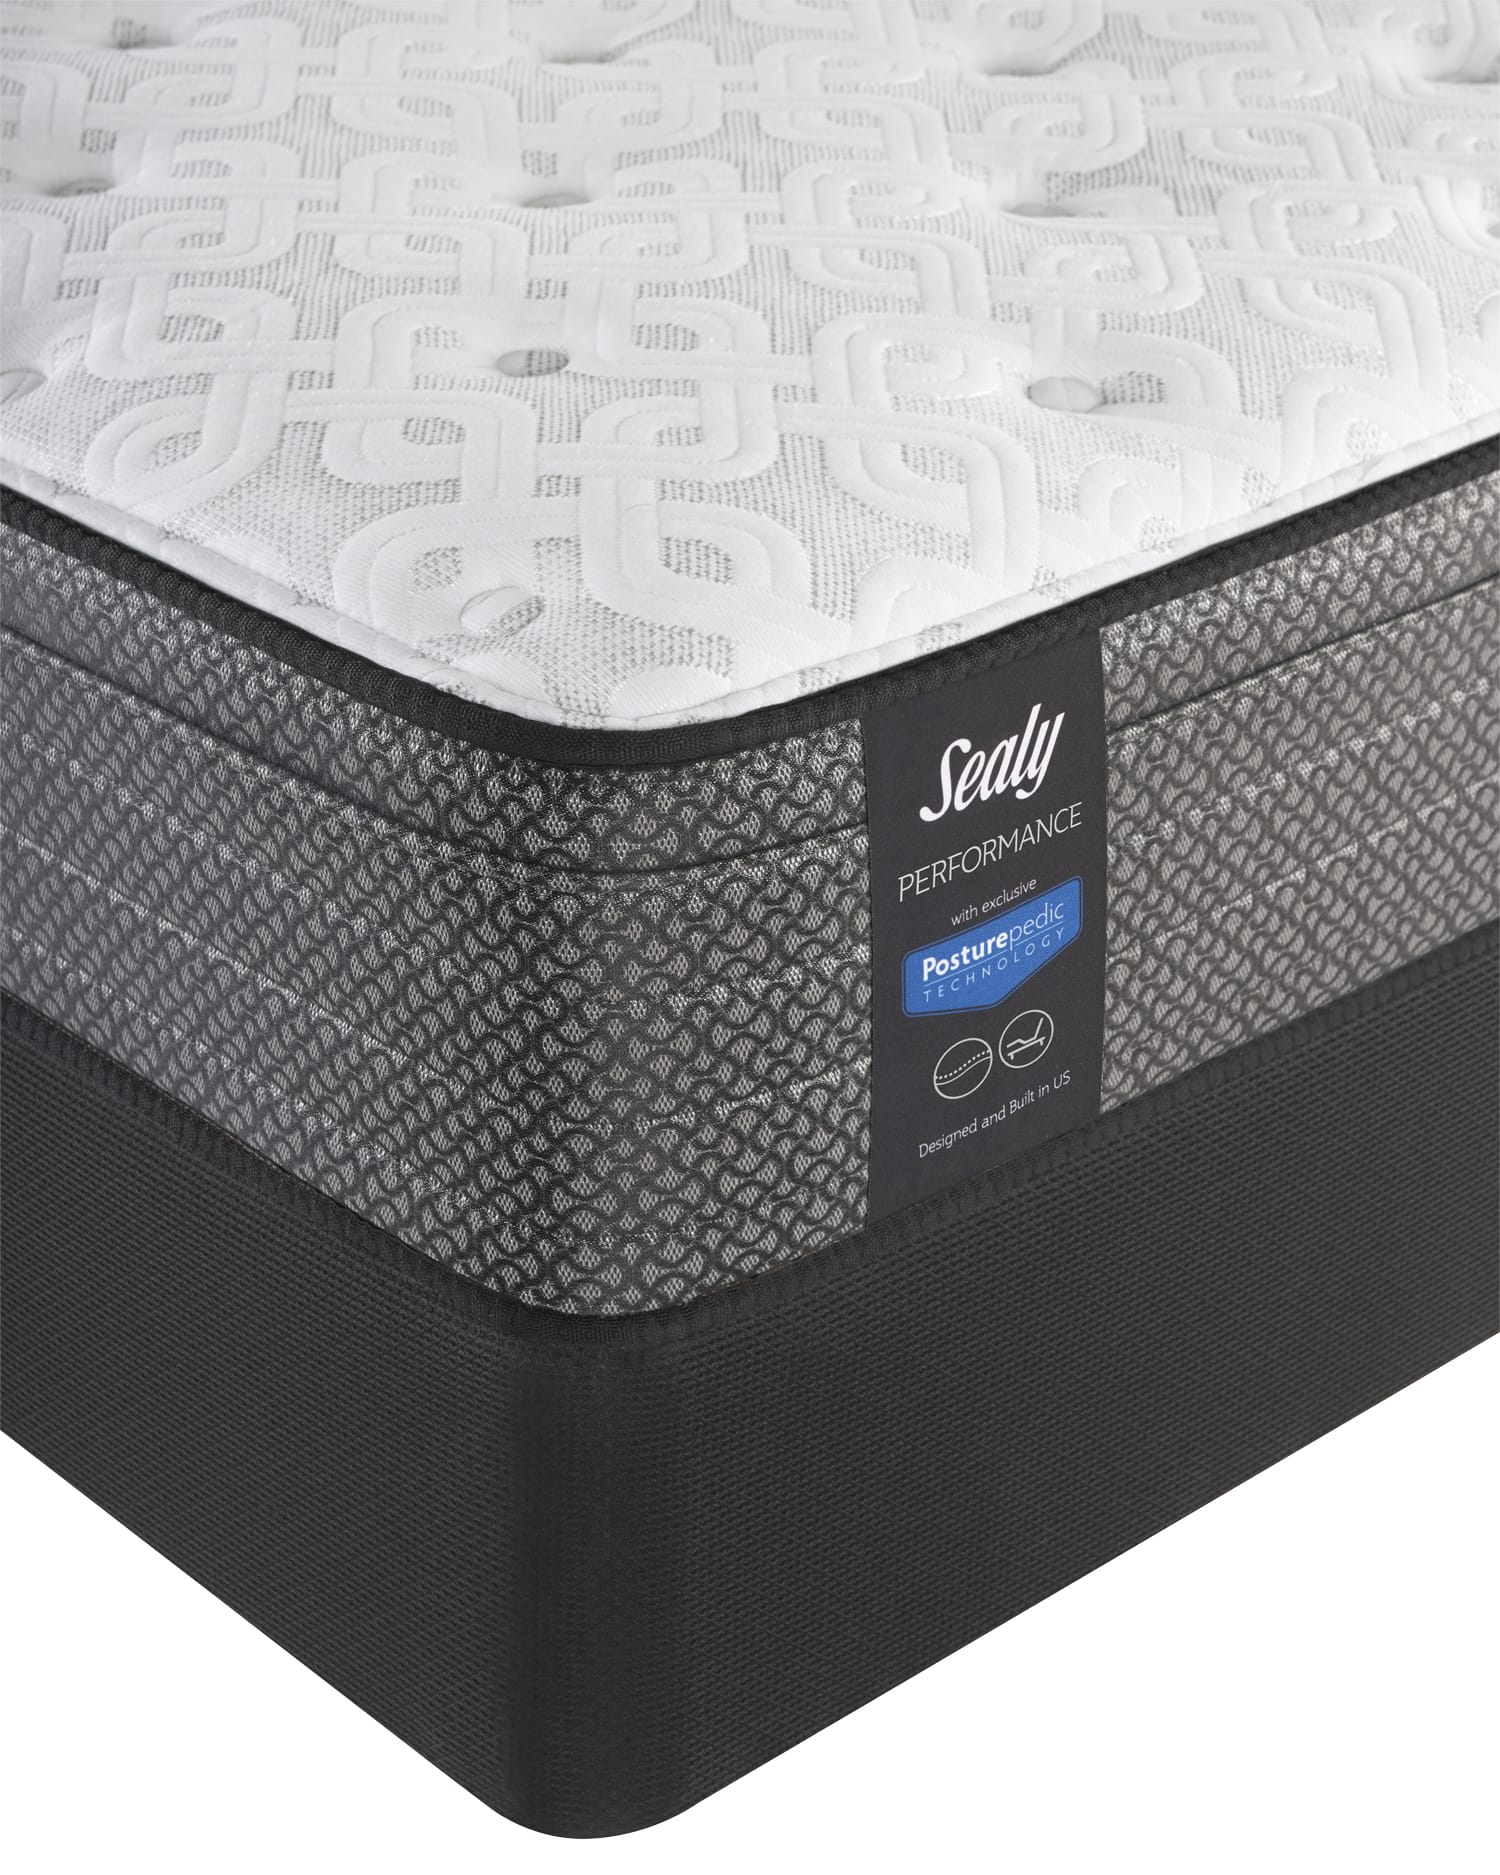 Sealy Response Kenney Firm Queen Mattress + Box Spring - $350 +shipping